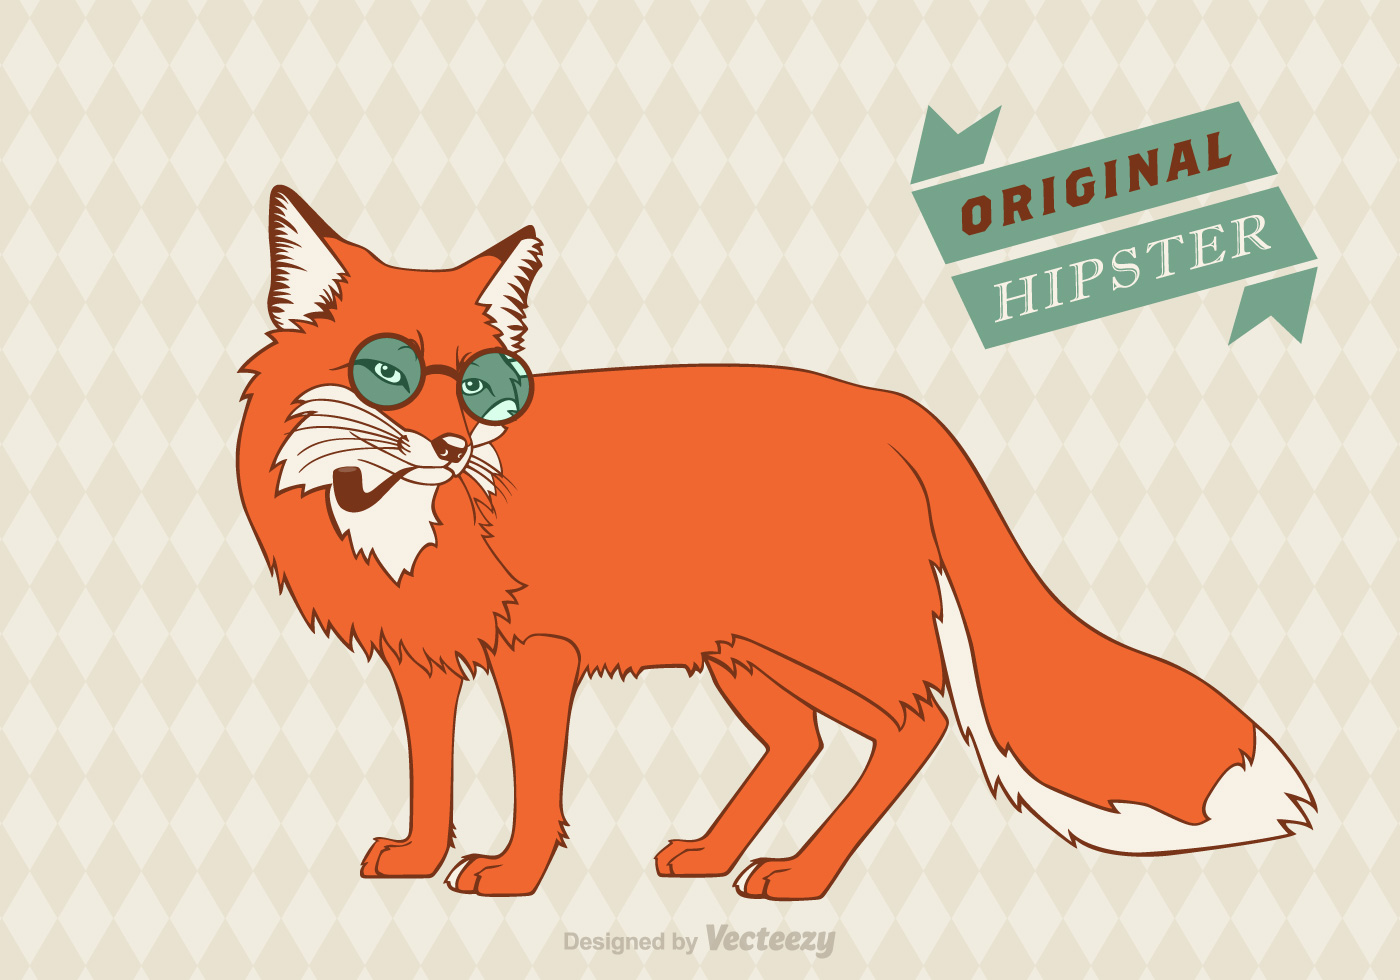 Cute Llama Wallpaper Desktop Free Hipster Fox Vector Background Download Free Vector